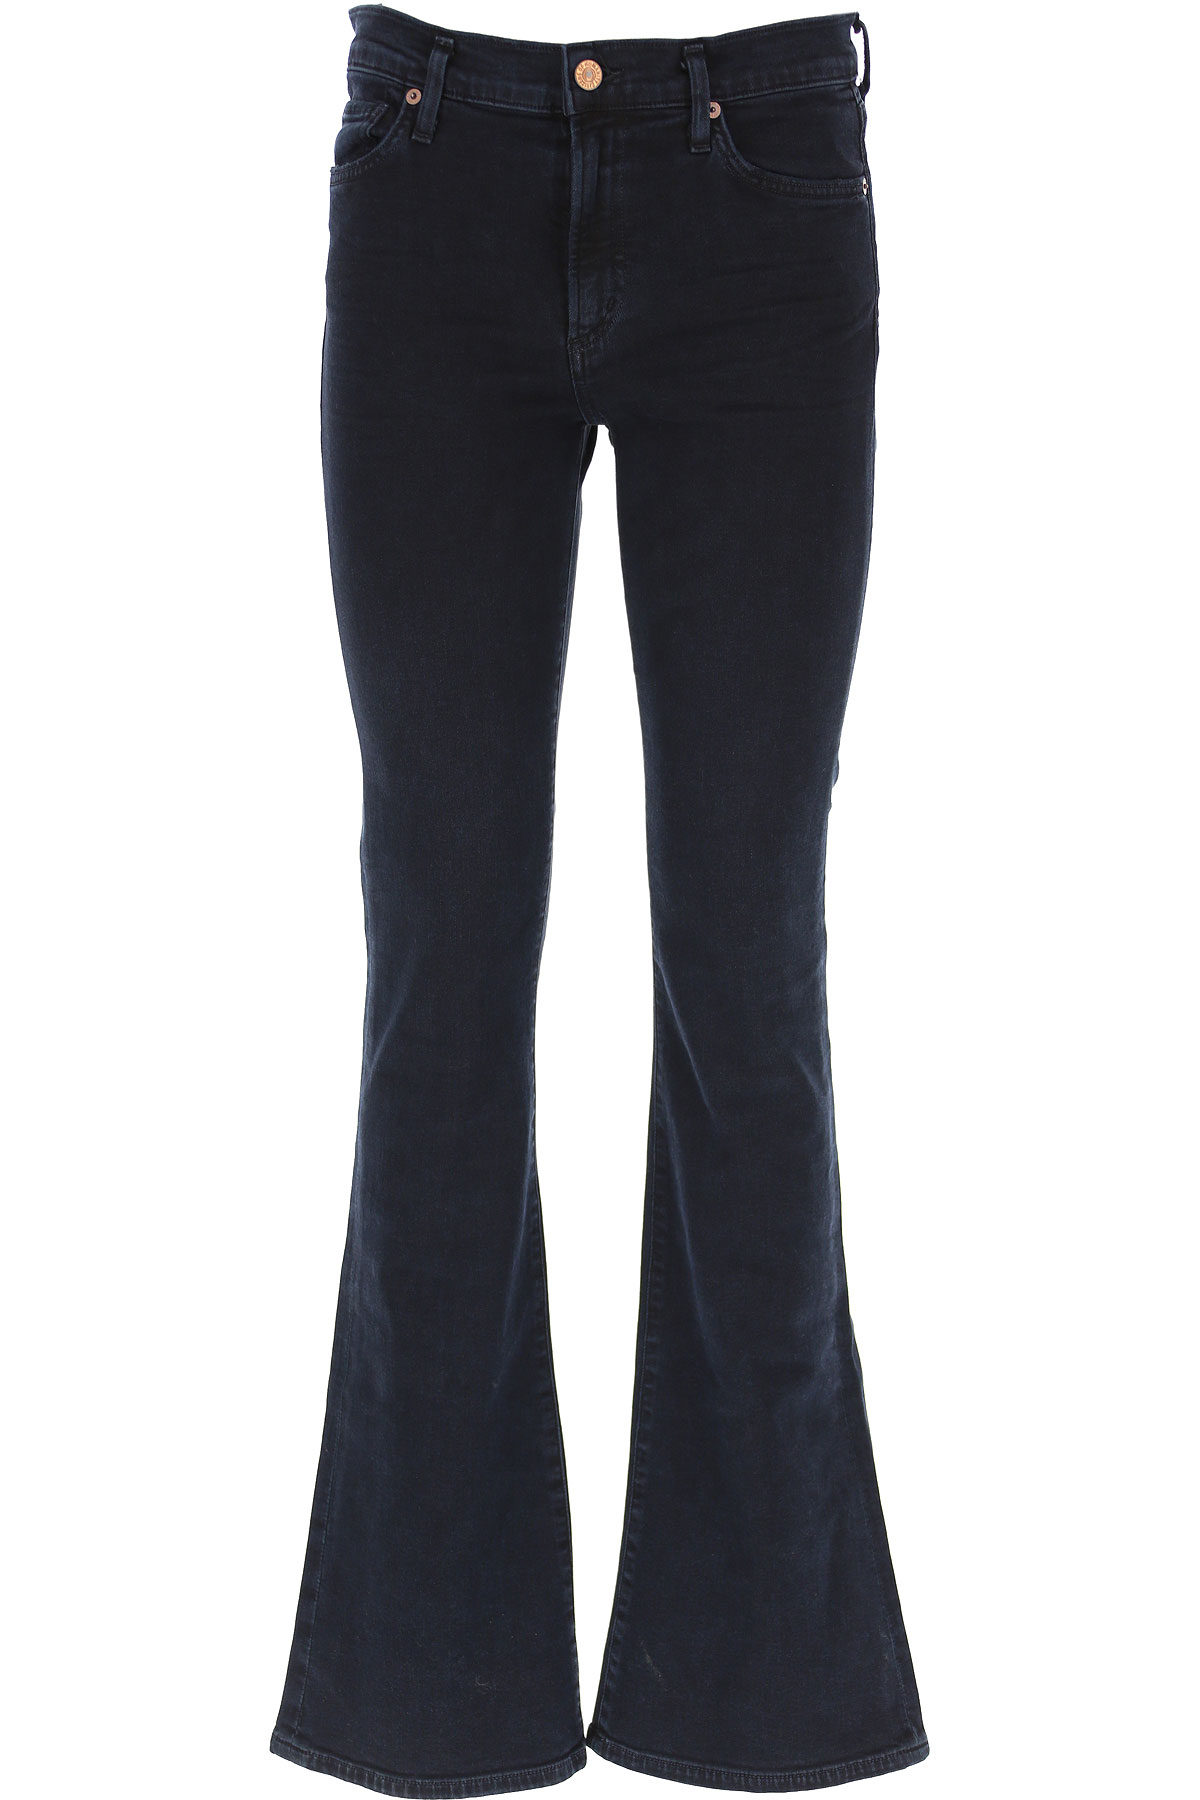 Citizens of Humanity Jeans On Sale, Navy Blue, Cotton, 2019, 25 27 28